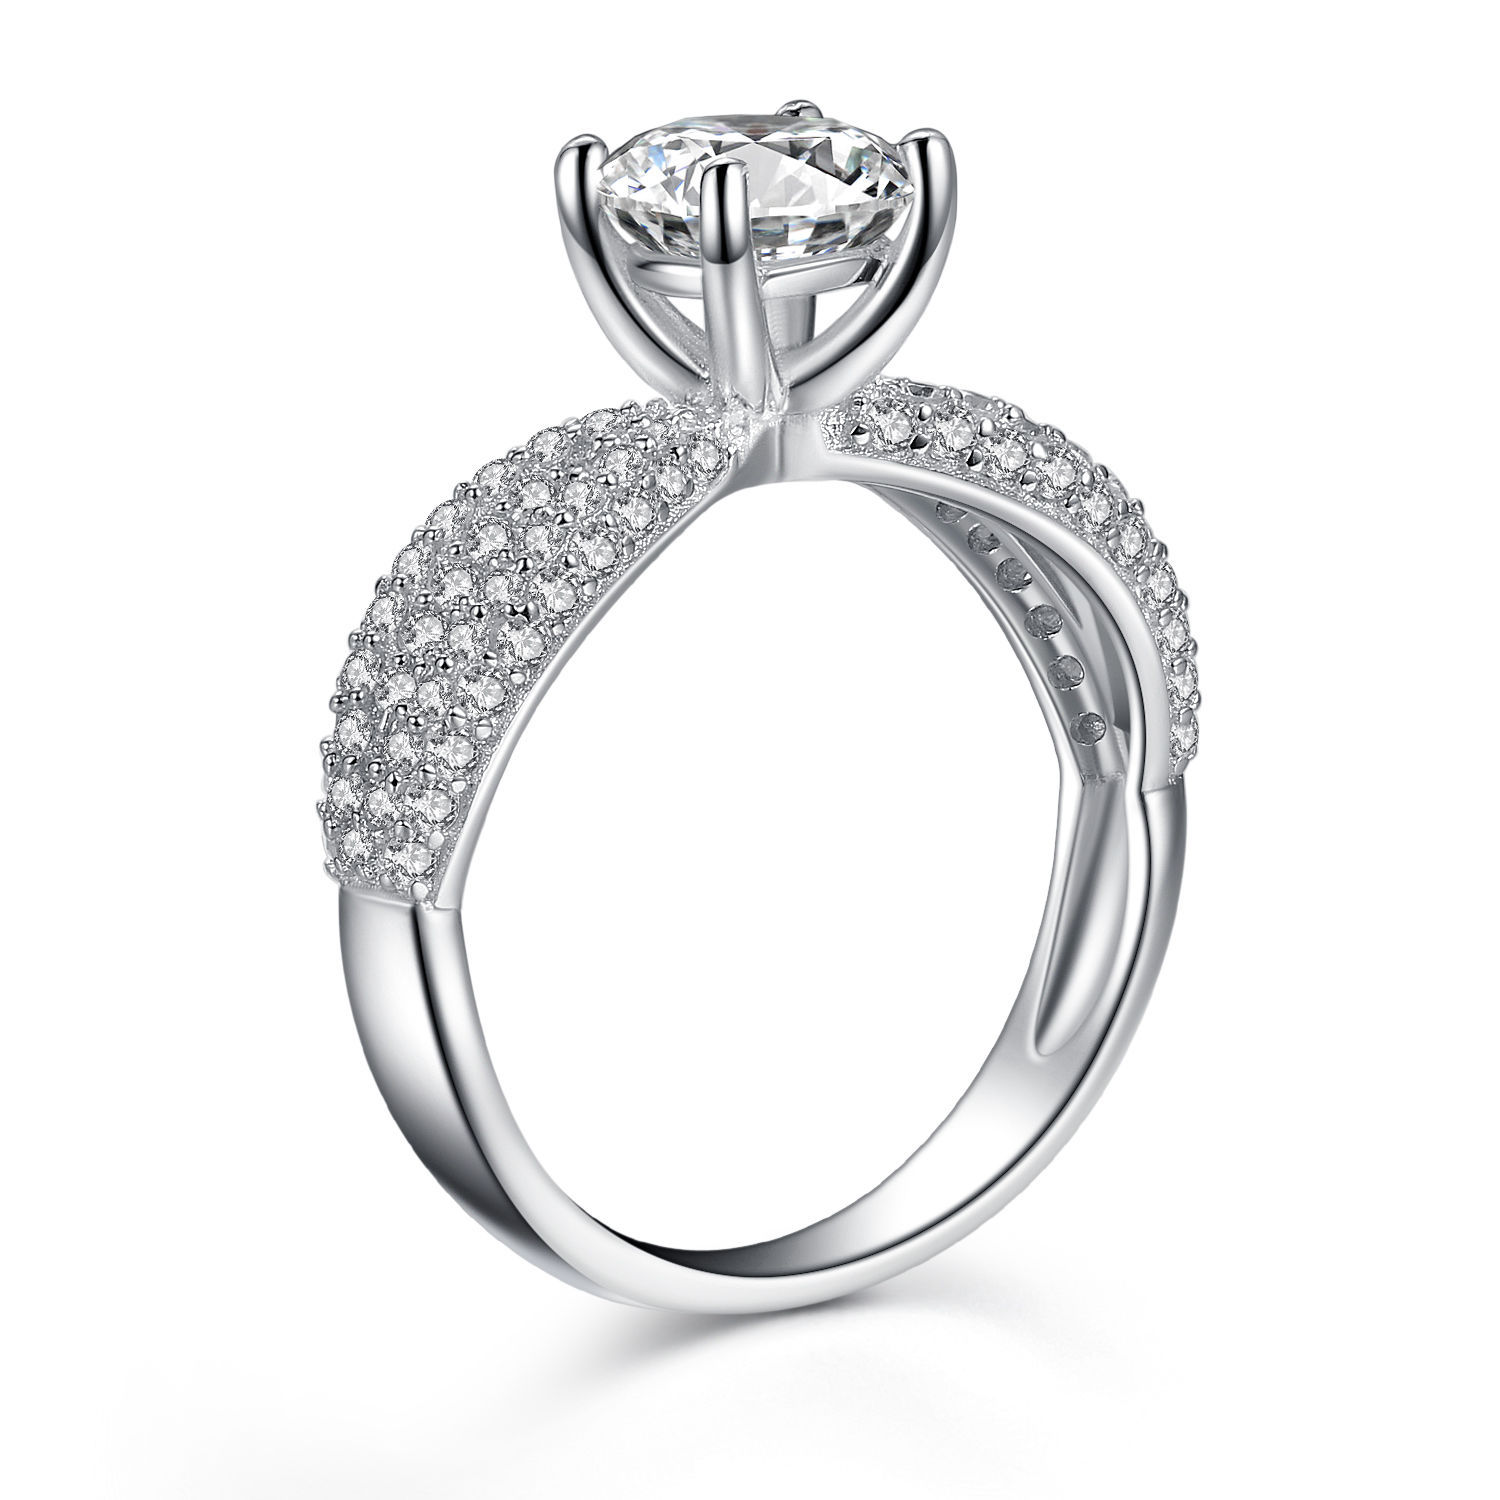 Women's 925 Sterling Silver Round Cubic Zirconia